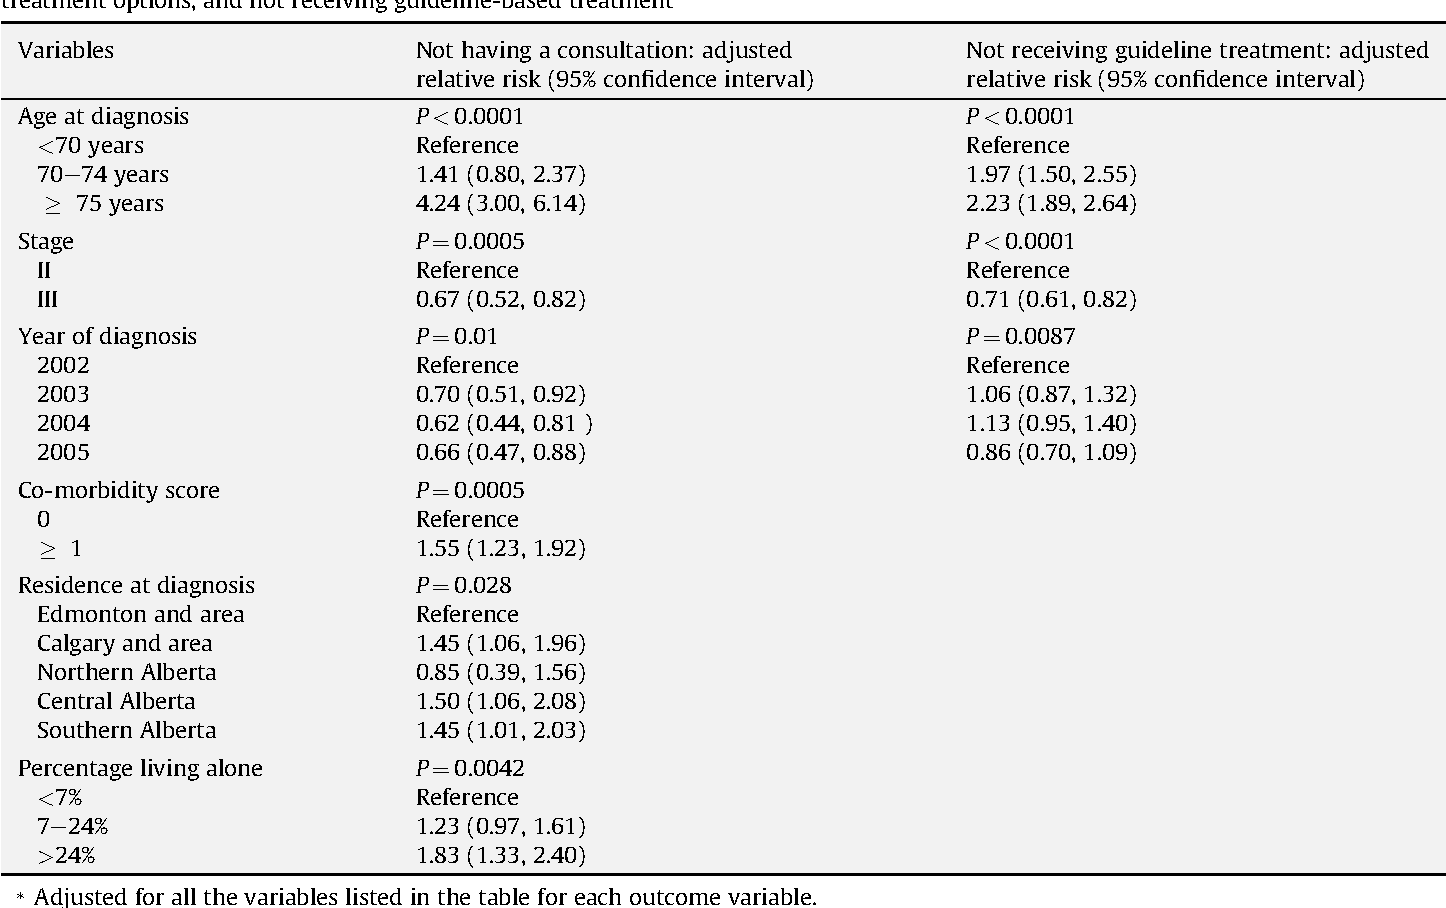 Adherence To Treatment Guidelines In Stage Ii Iii Rectal Cancer In Alberta Canada Semantic Scholar